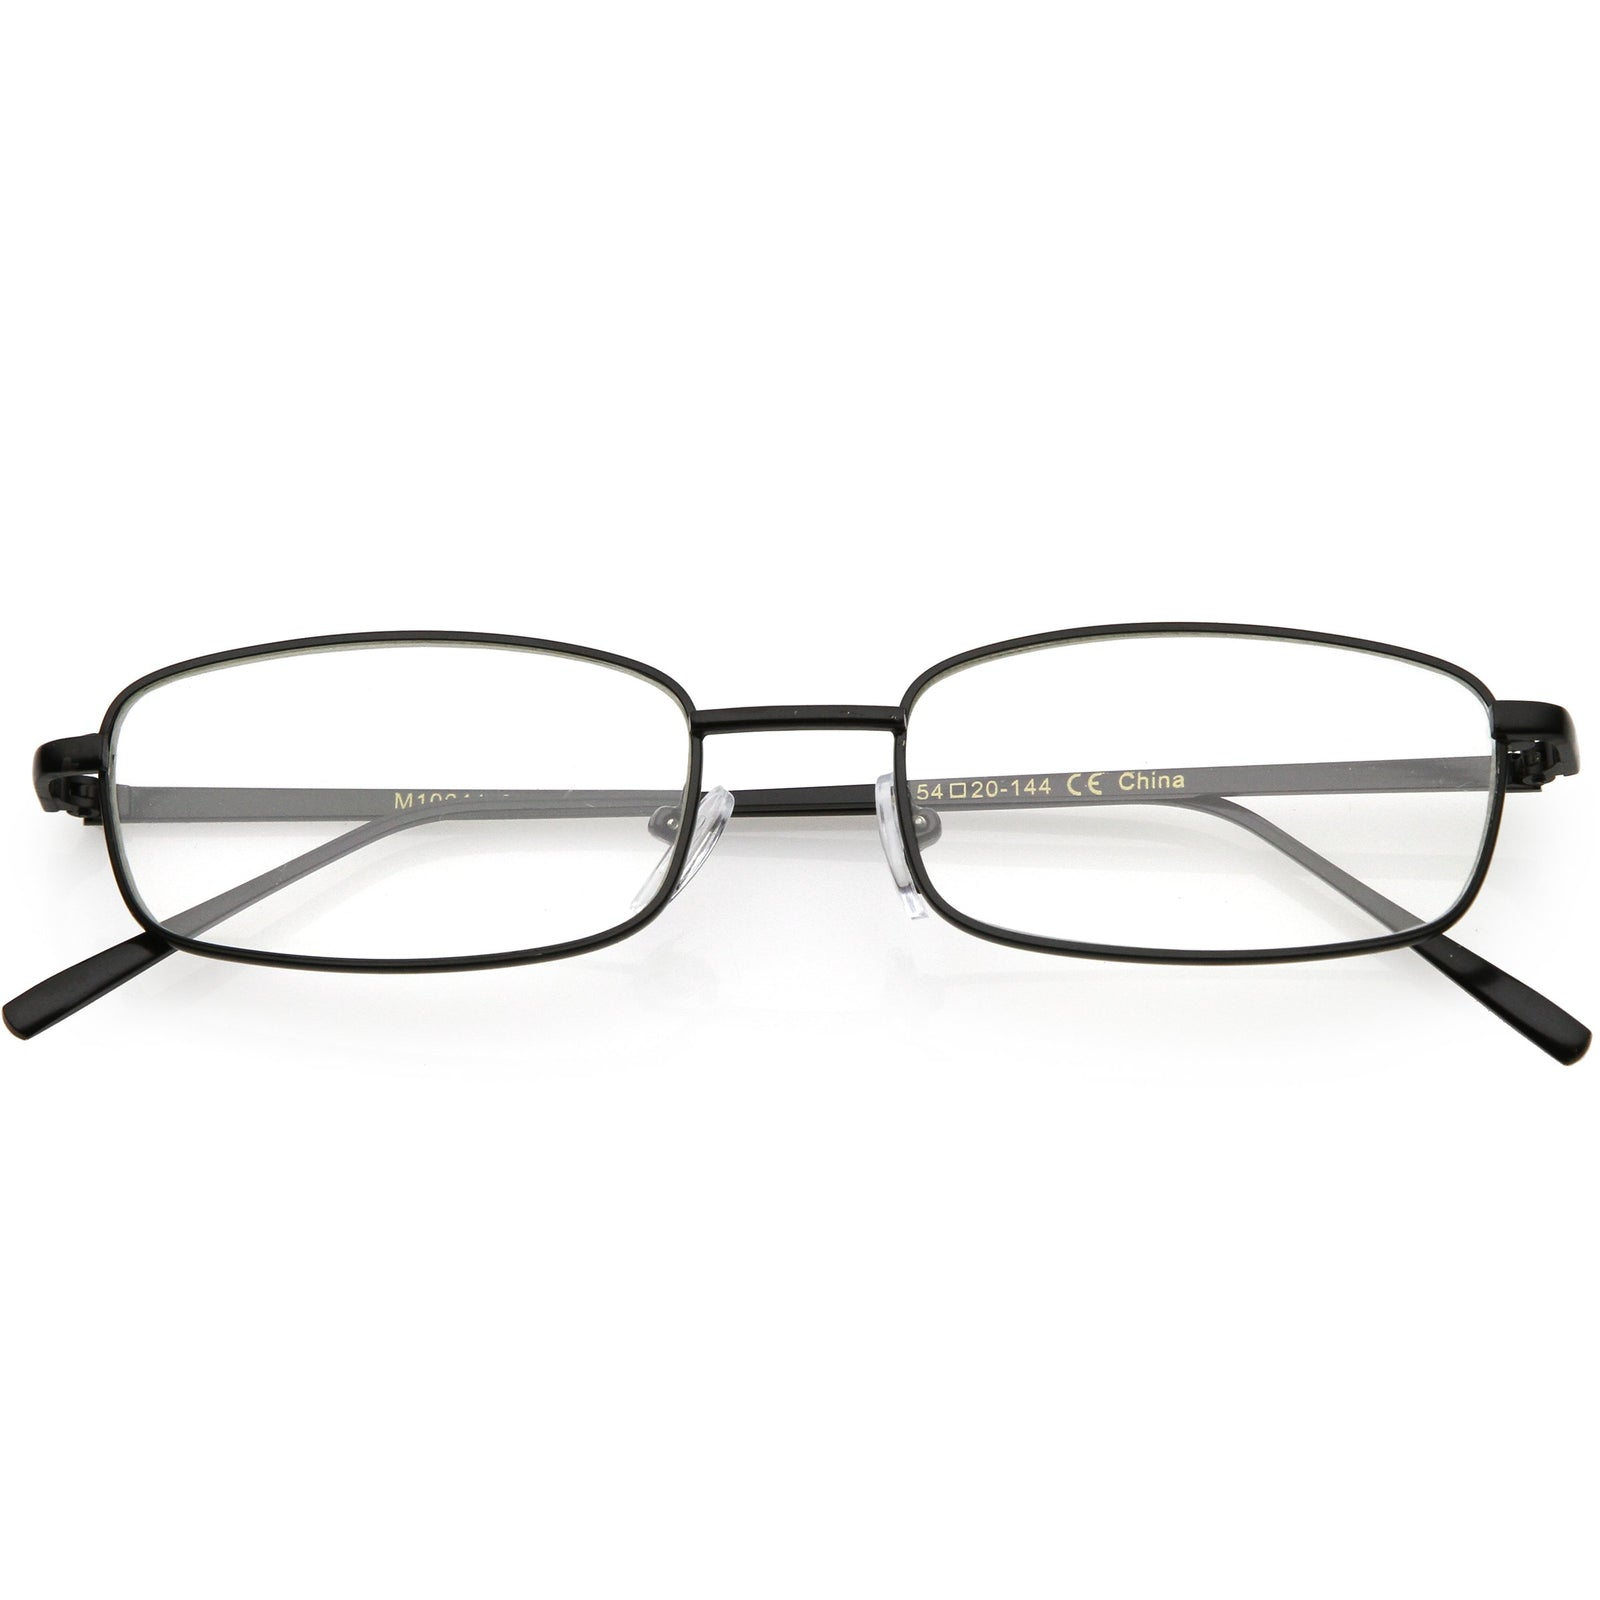 11d3677cd9f Classic Vintage Inspired Rectangle Flat Clear Lens Glasses C726